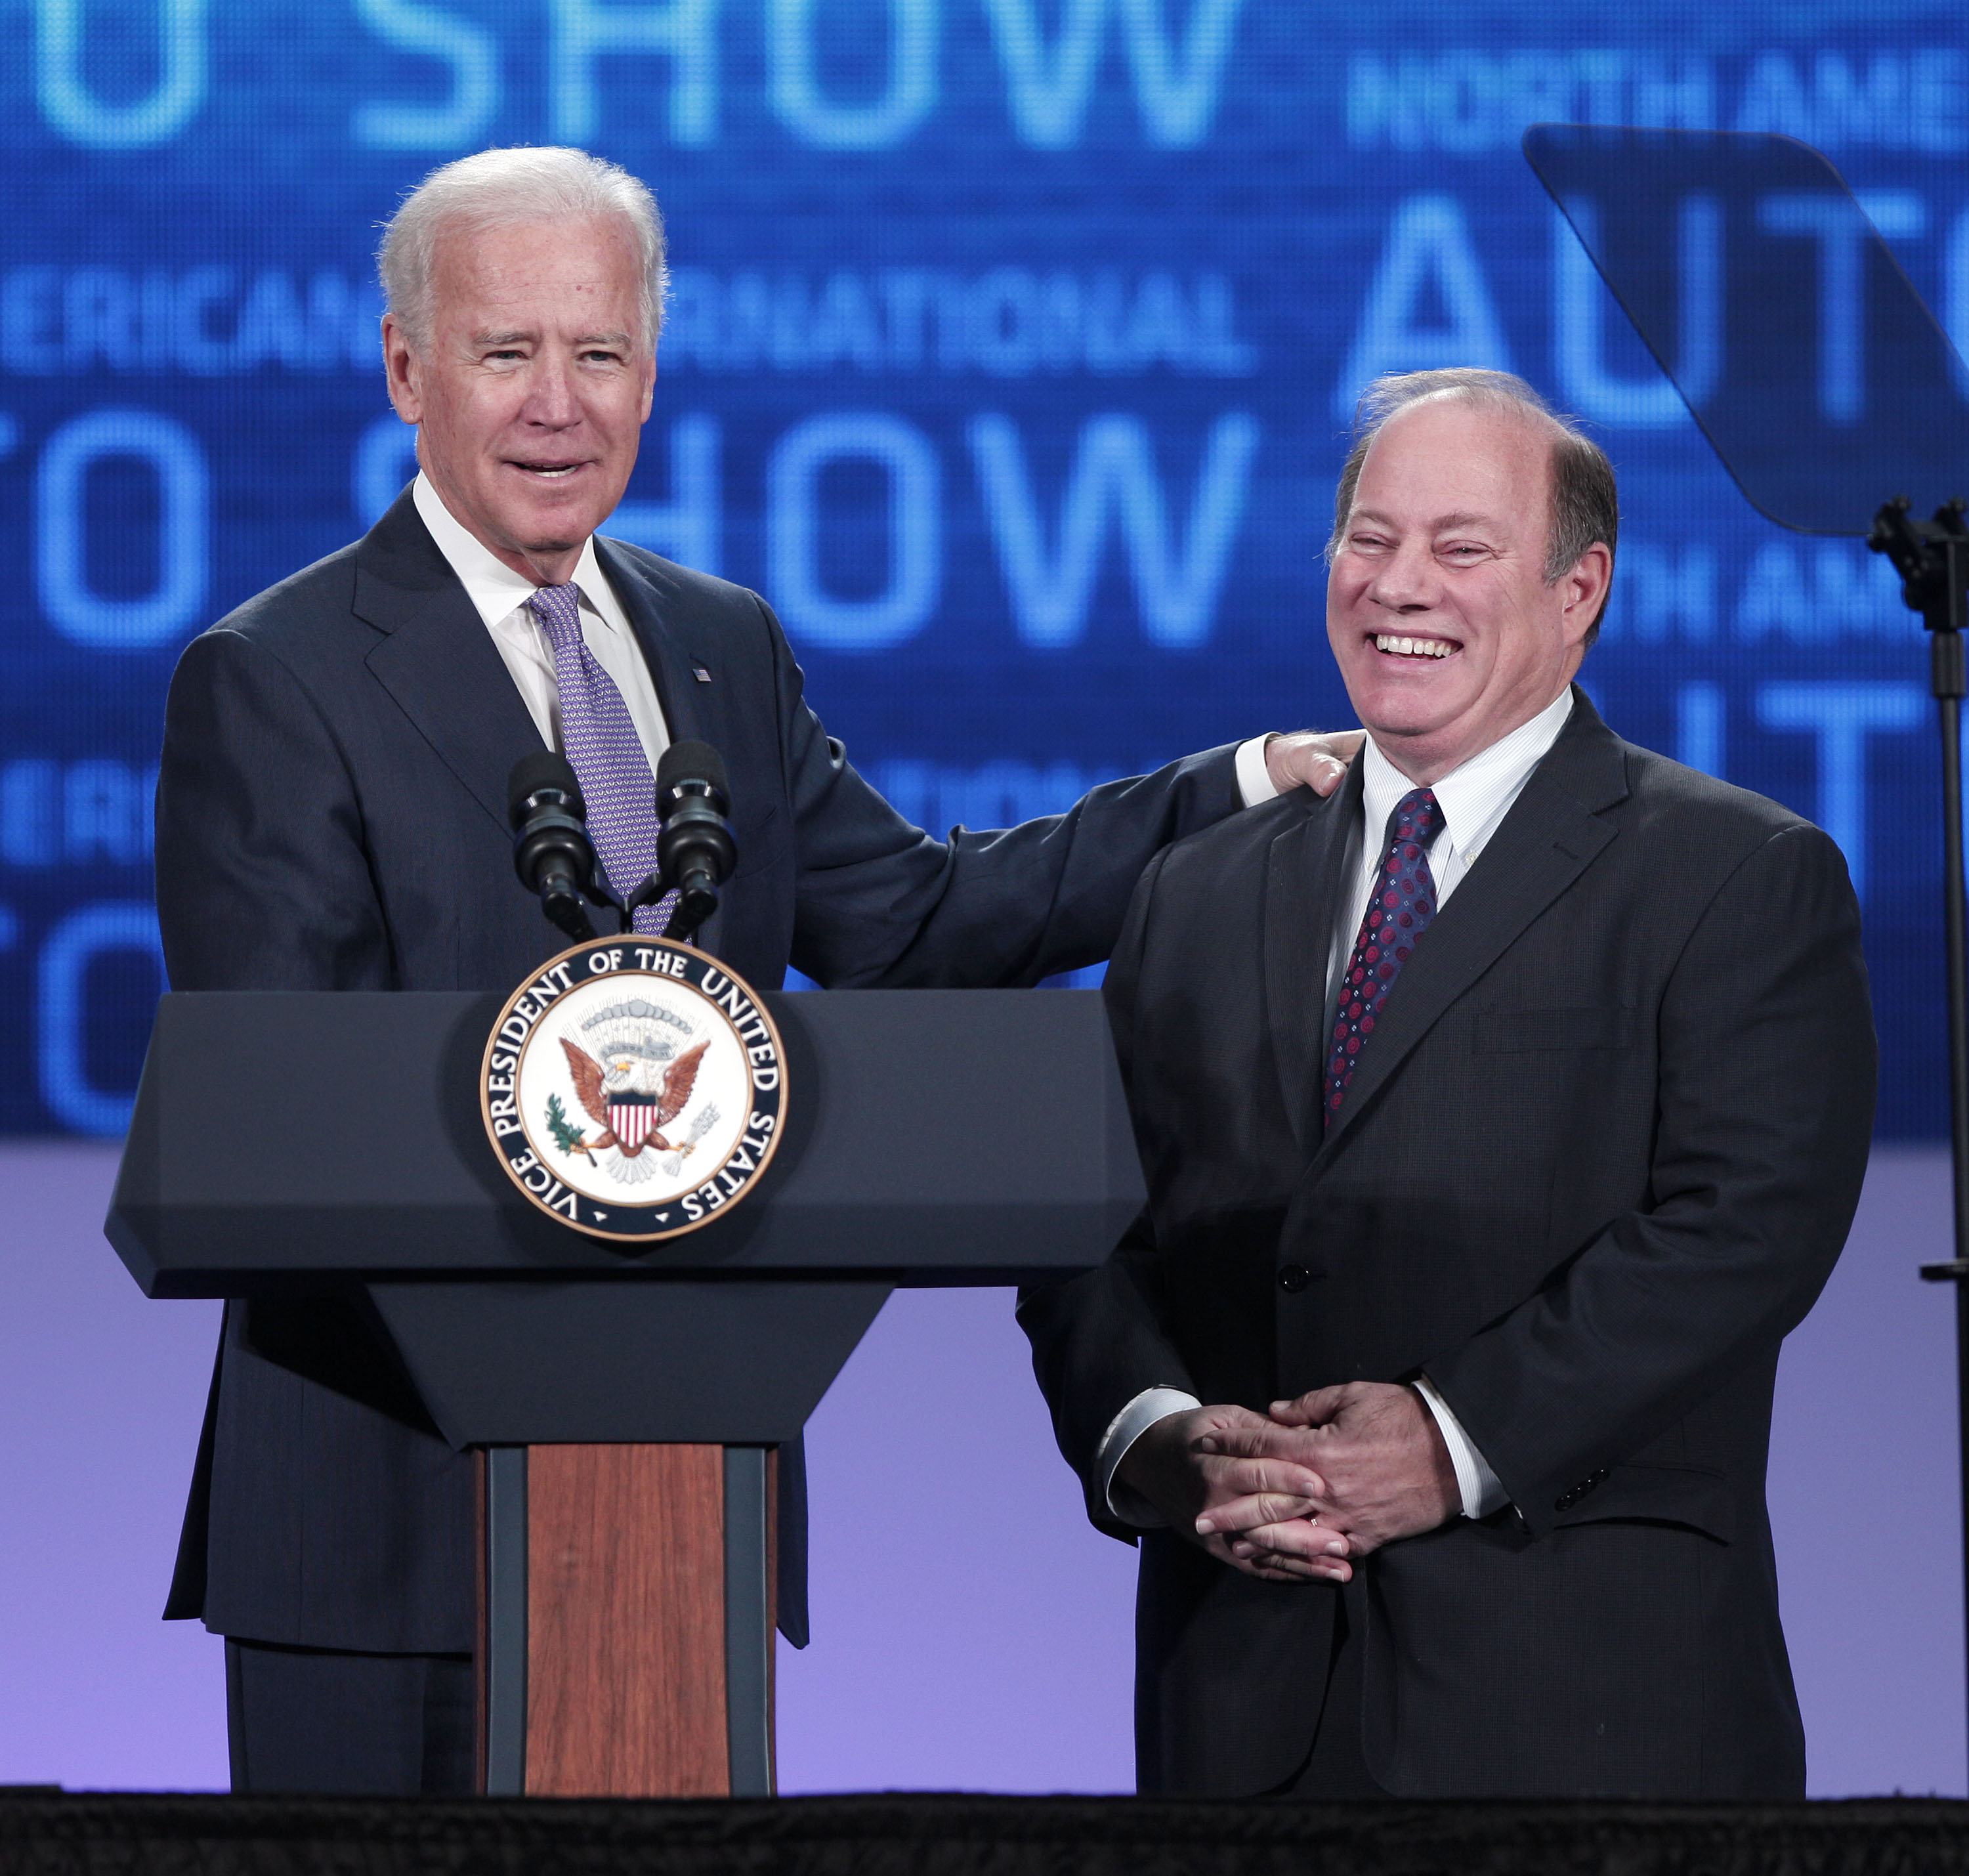 DETROIT, MI - JANUARY 16: U.S. Vice President Joe Biden (left) and Detroit Mayor Mike Duggan stand on stage before the Vice President gives a speech about the future of the American auto industry at the 2014 North American International Auto Show January 16, 2014 in Detroit, Michigan. The 2014 NAIAS is being held at Detroit's Cobo Arena, opens to the public on January 18th, and ends January 26th. (Photo by Bill Pugliano/Getty Images)